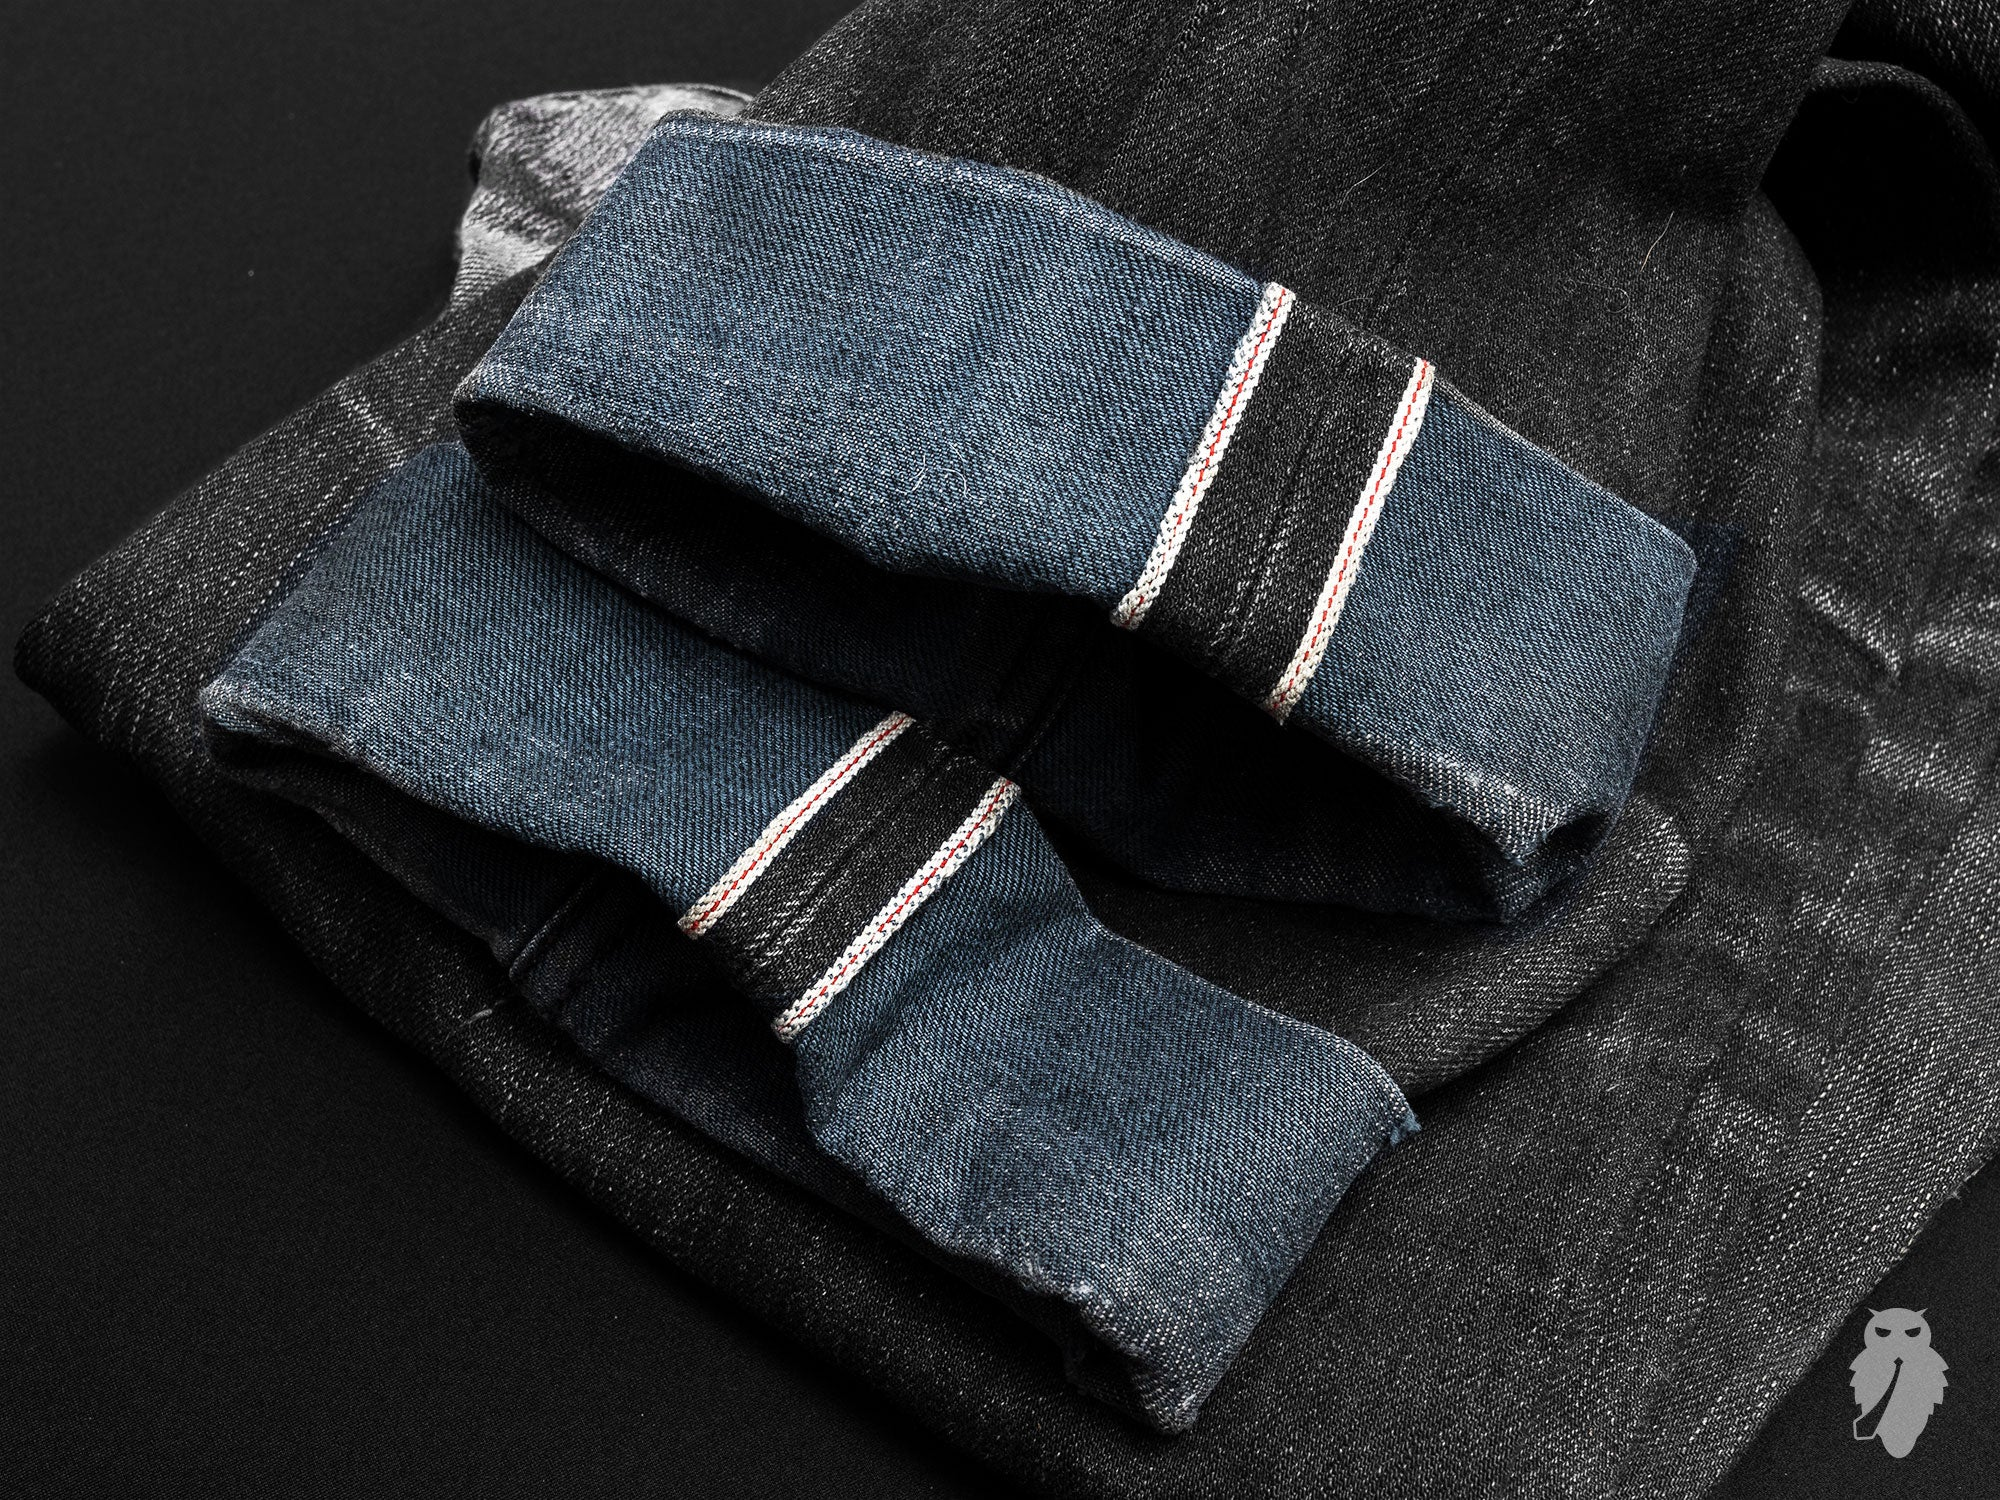 freenote denim portola cuffs faded black